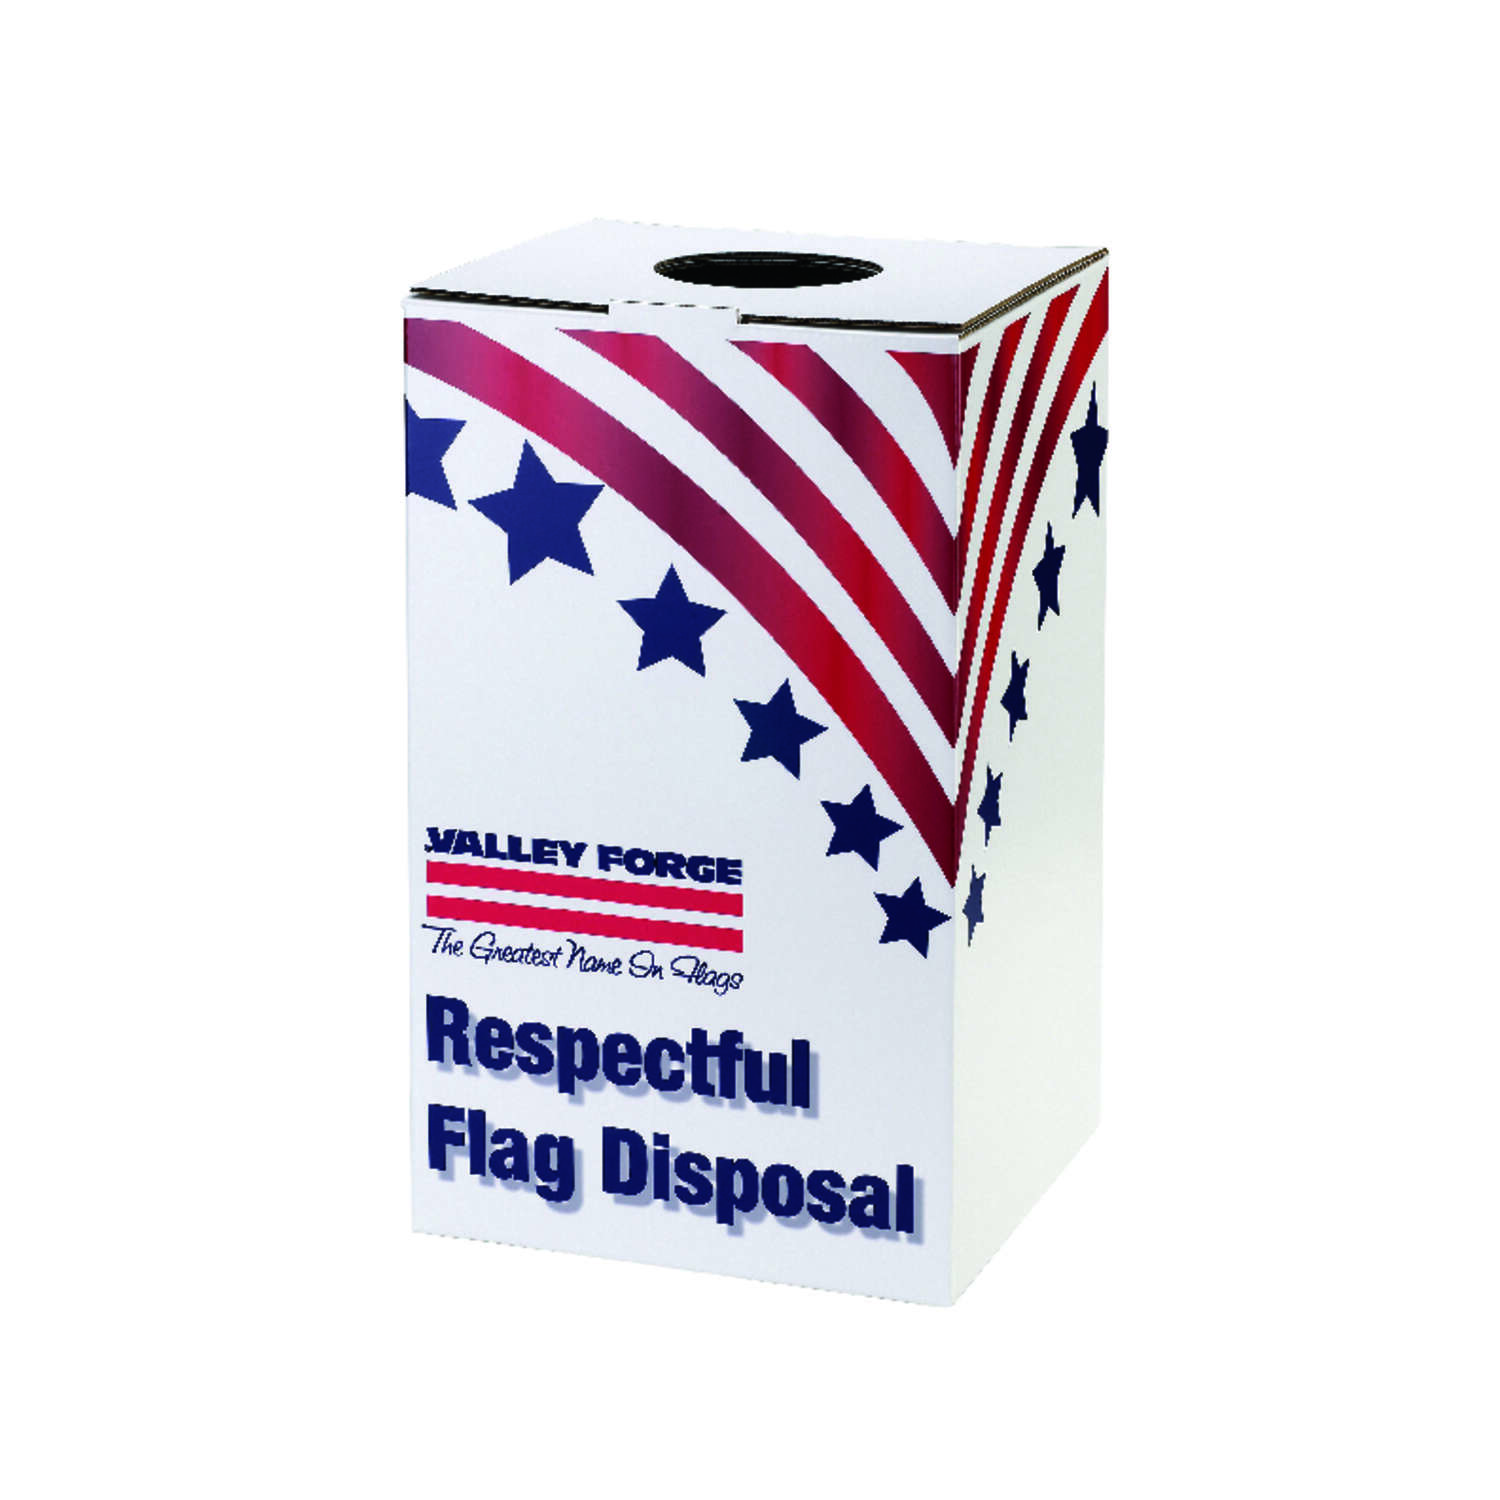 Valley Forge Flag Disposal Box 22 in. H x 12.5 in. W